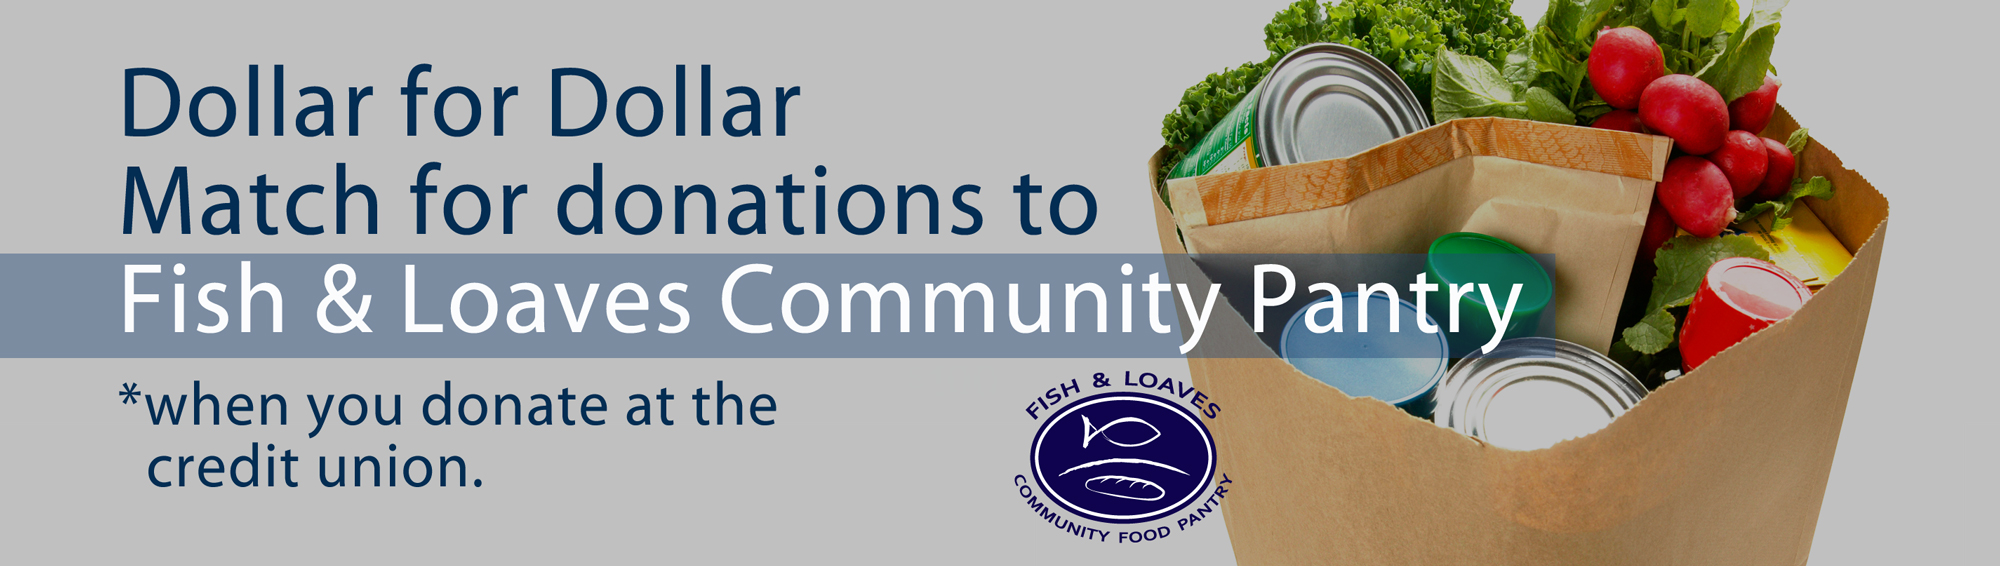 Dollar for Dollar Match when you donate to Fish & Loaves Community Pantry at the credit union